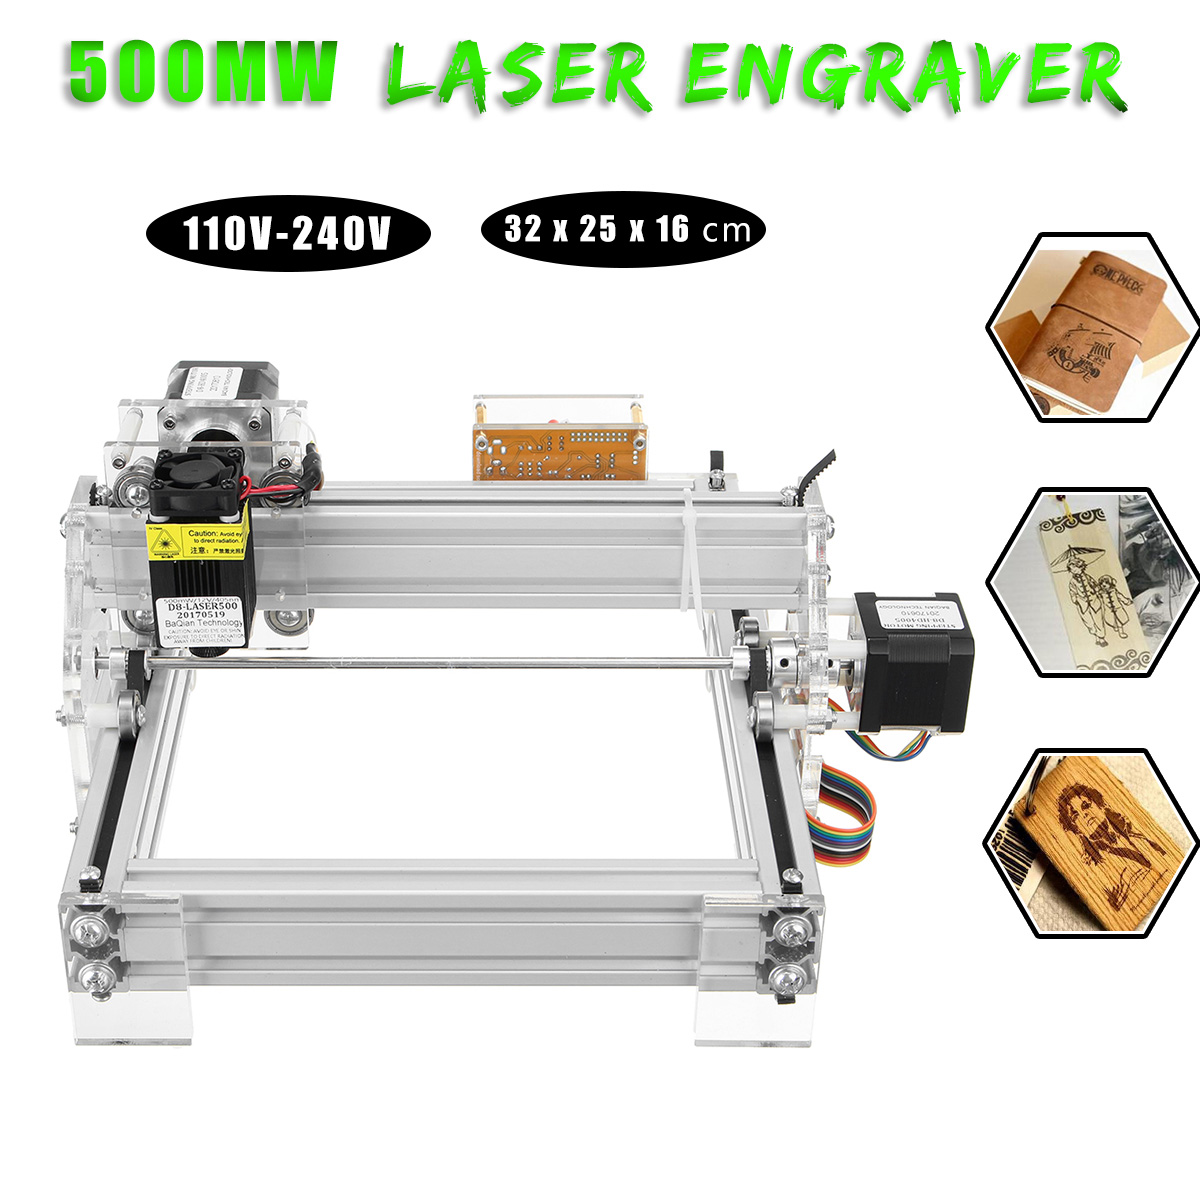 500mw DIY USB Laser Engraving Marking Machine Paper Wood Cutter Printer Engraver 2 Axis 2 Phase 4 Wire Laser Engraving Machine